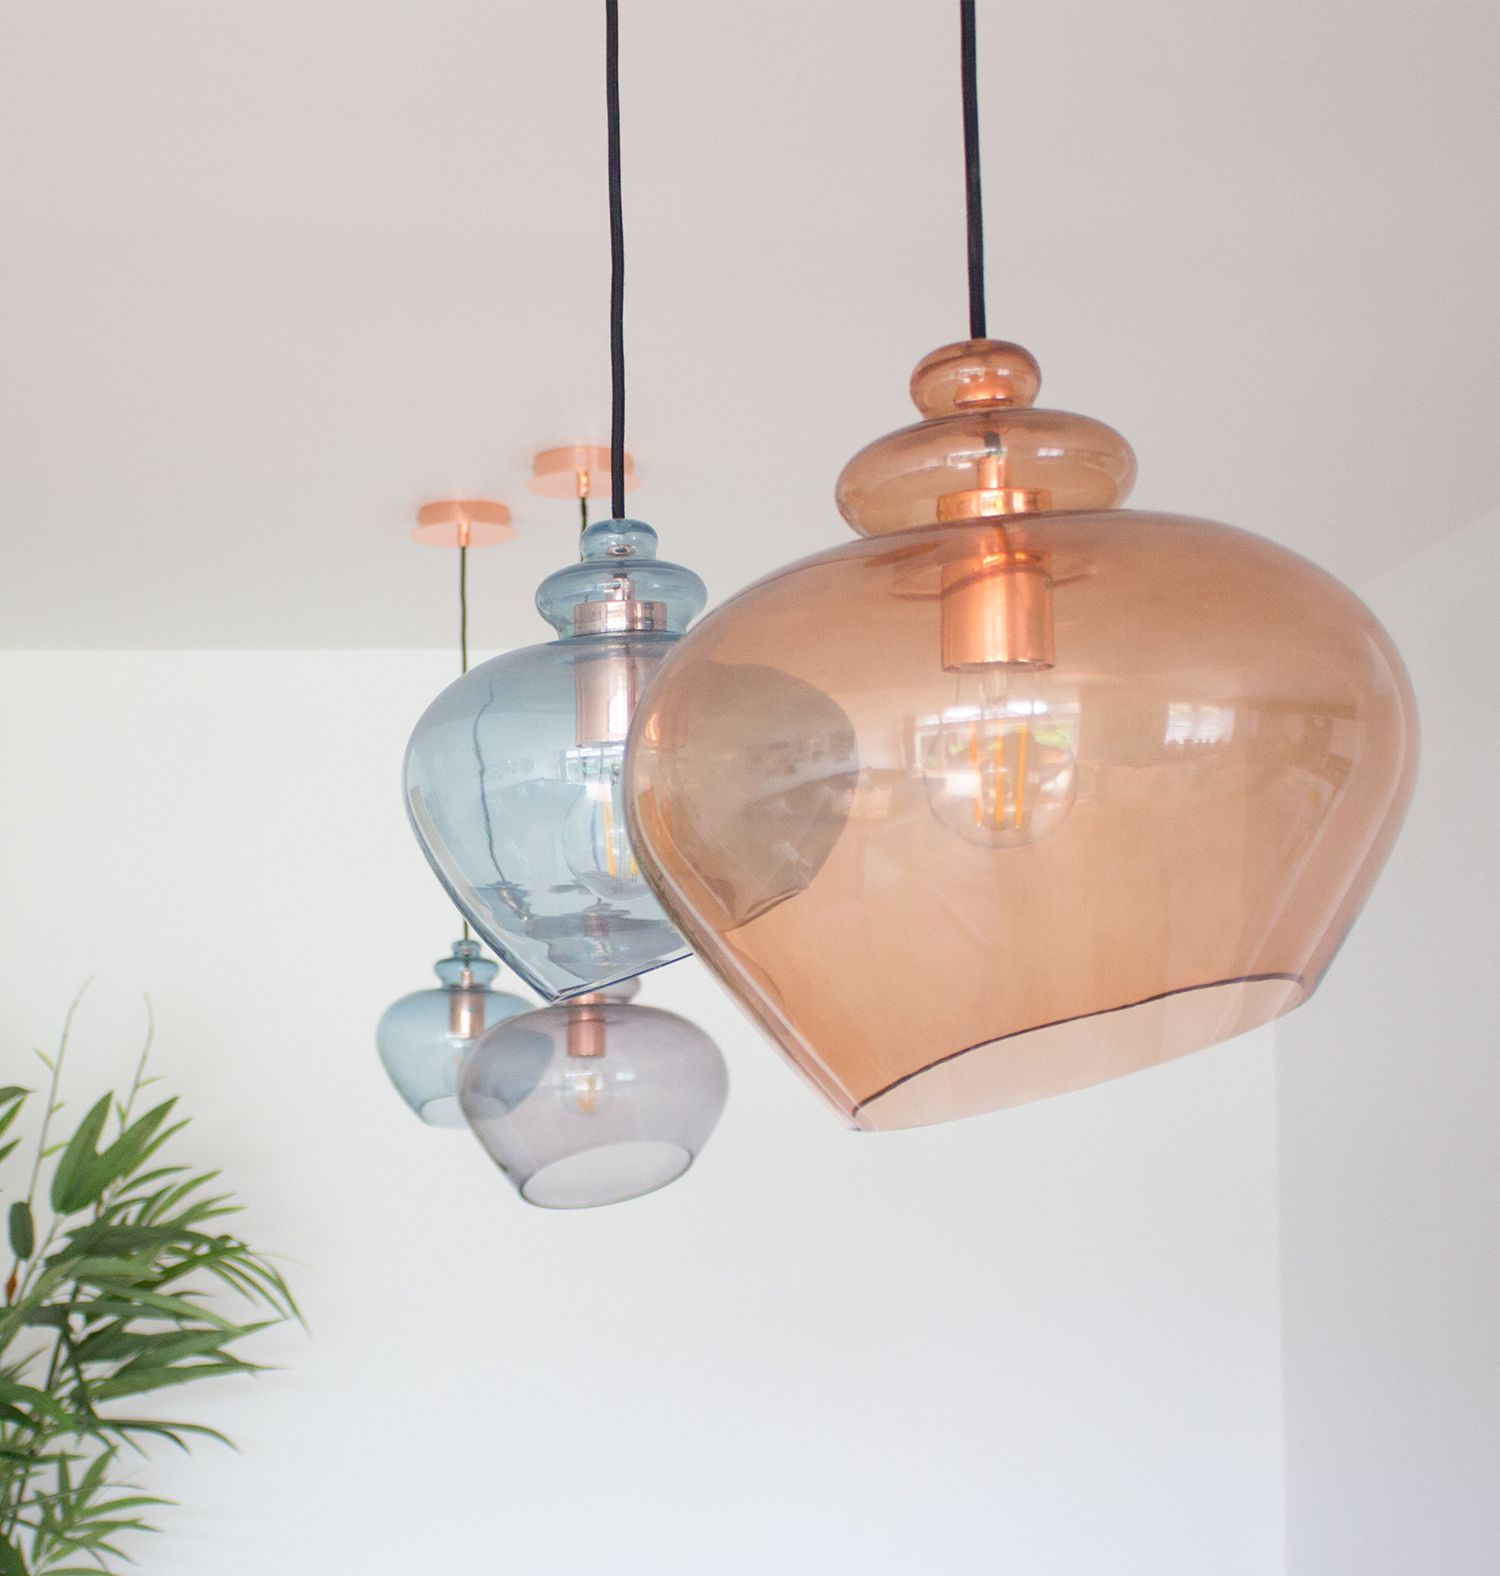 A close up of the four glass blown pendant lights in orange and blue.